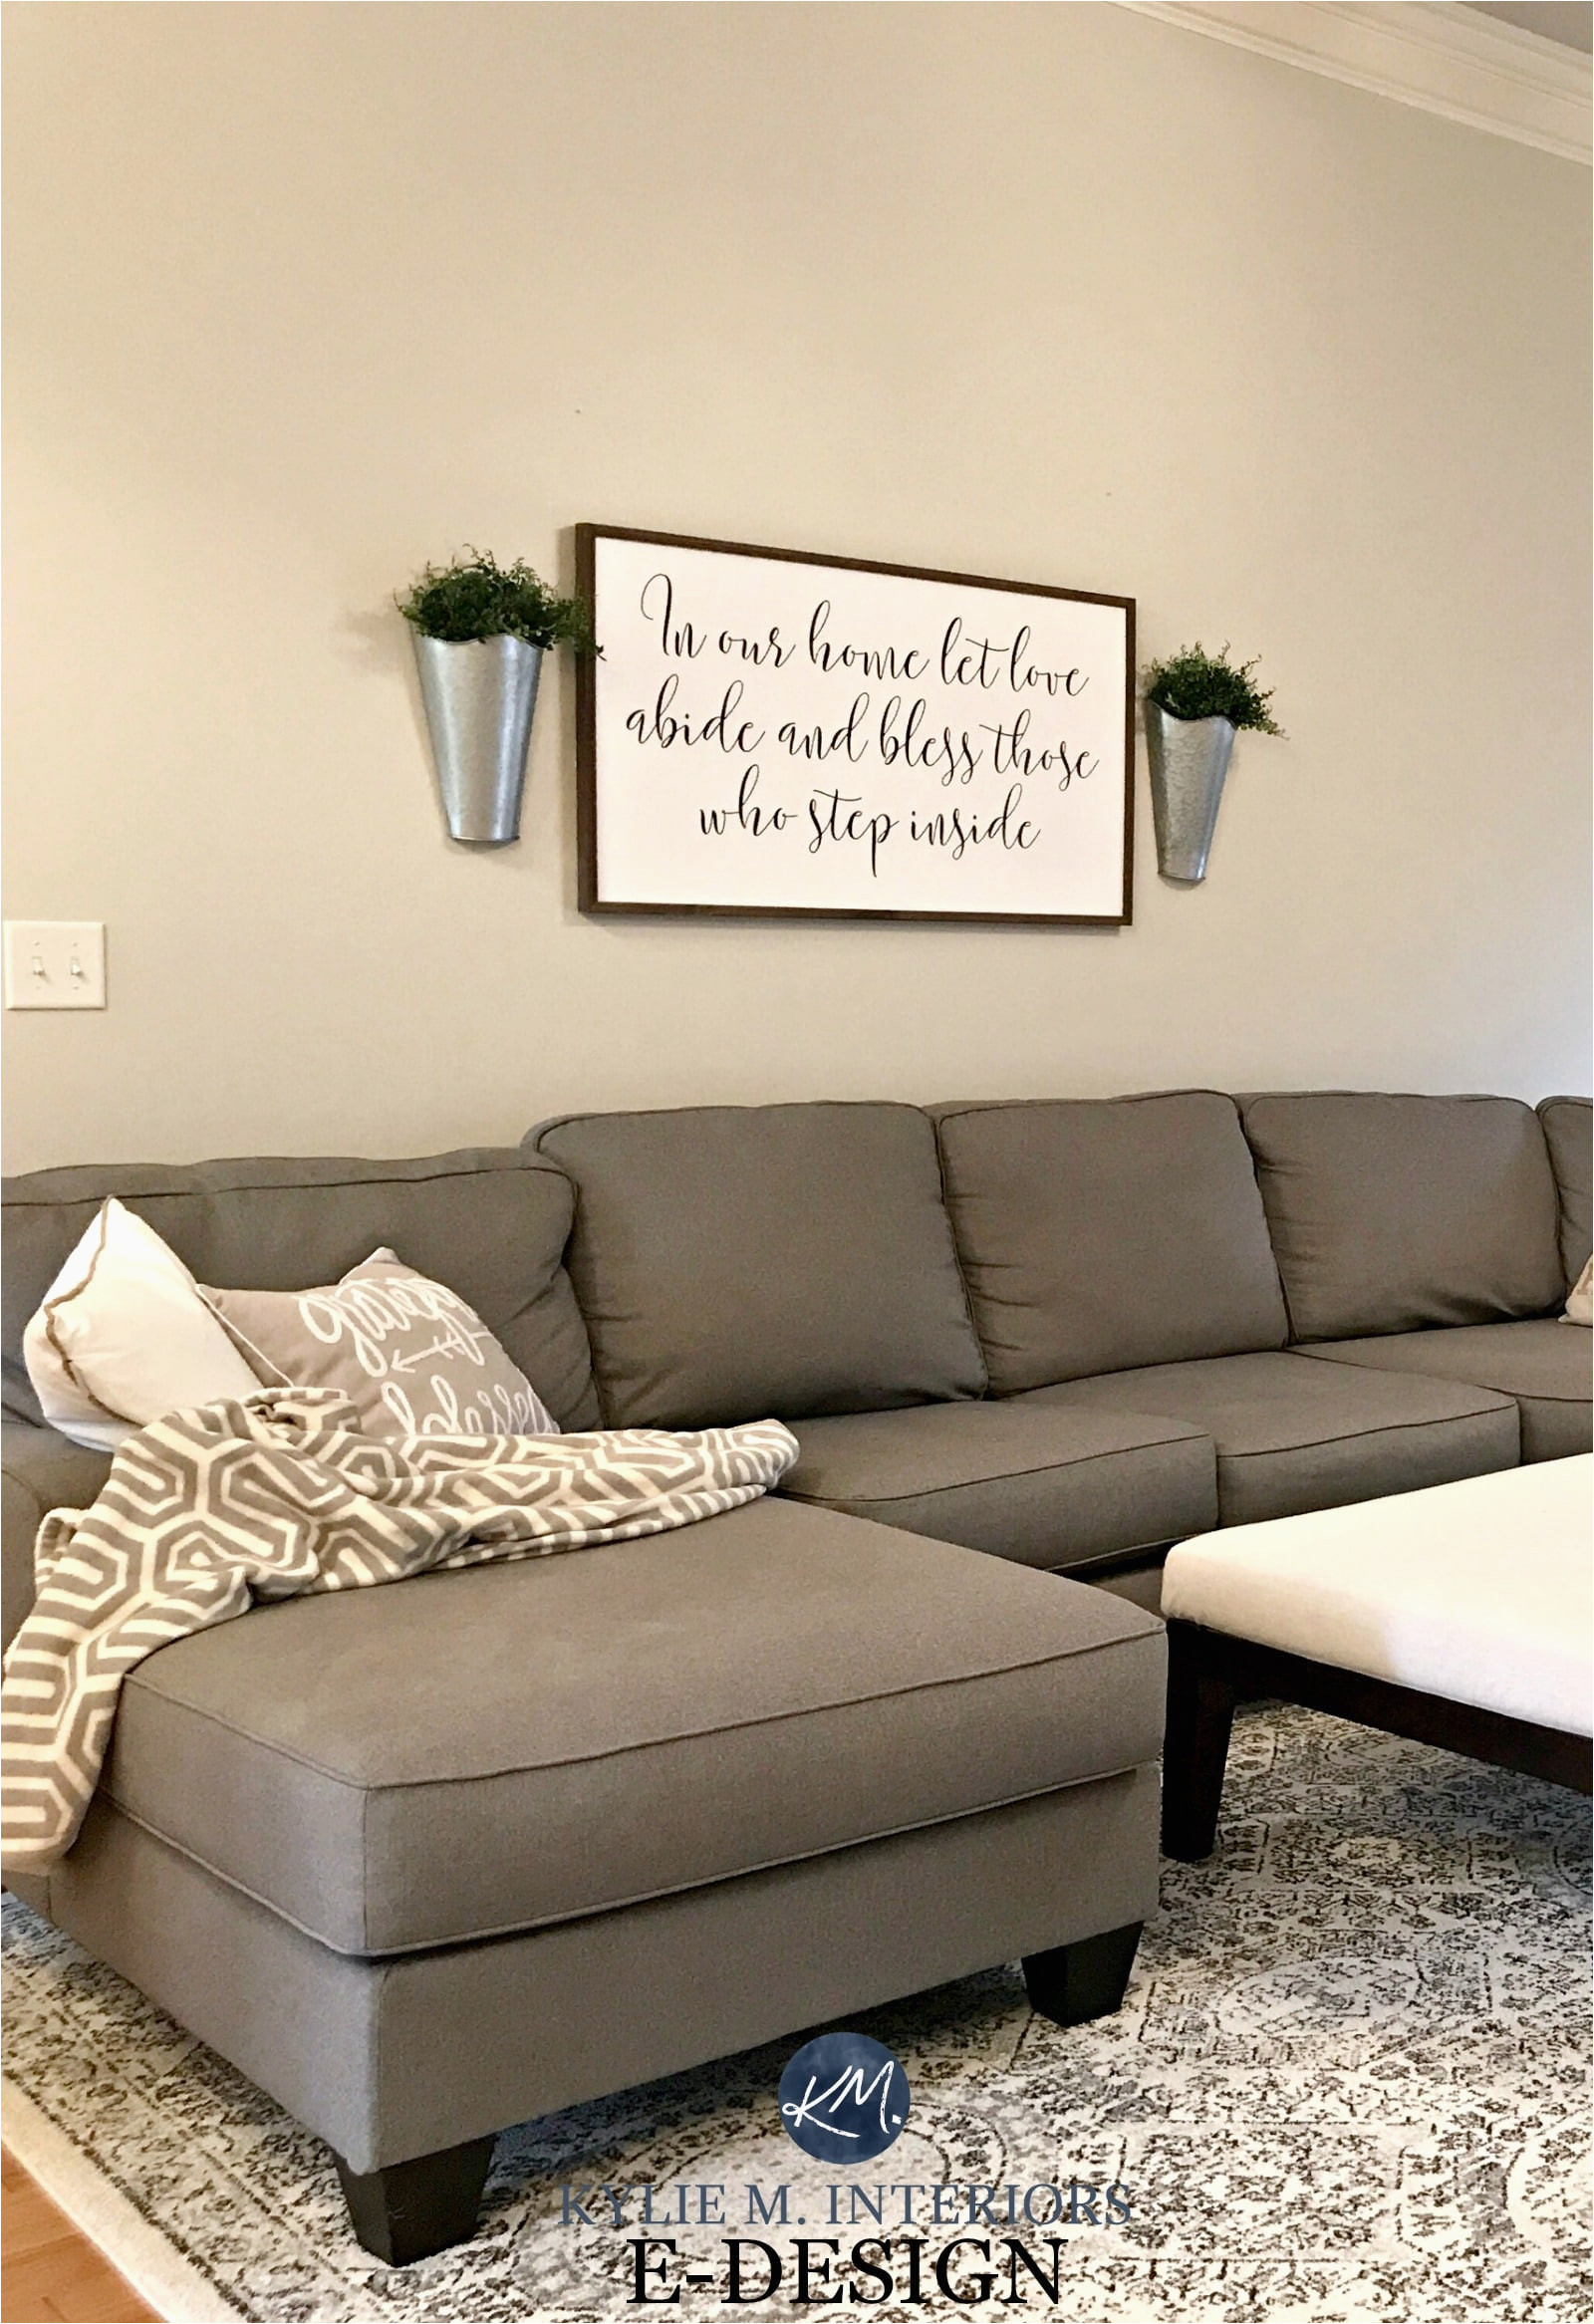 sherwin williams agreeable gray in living room gray sectional couch area rug kylie m e design and online color consulting